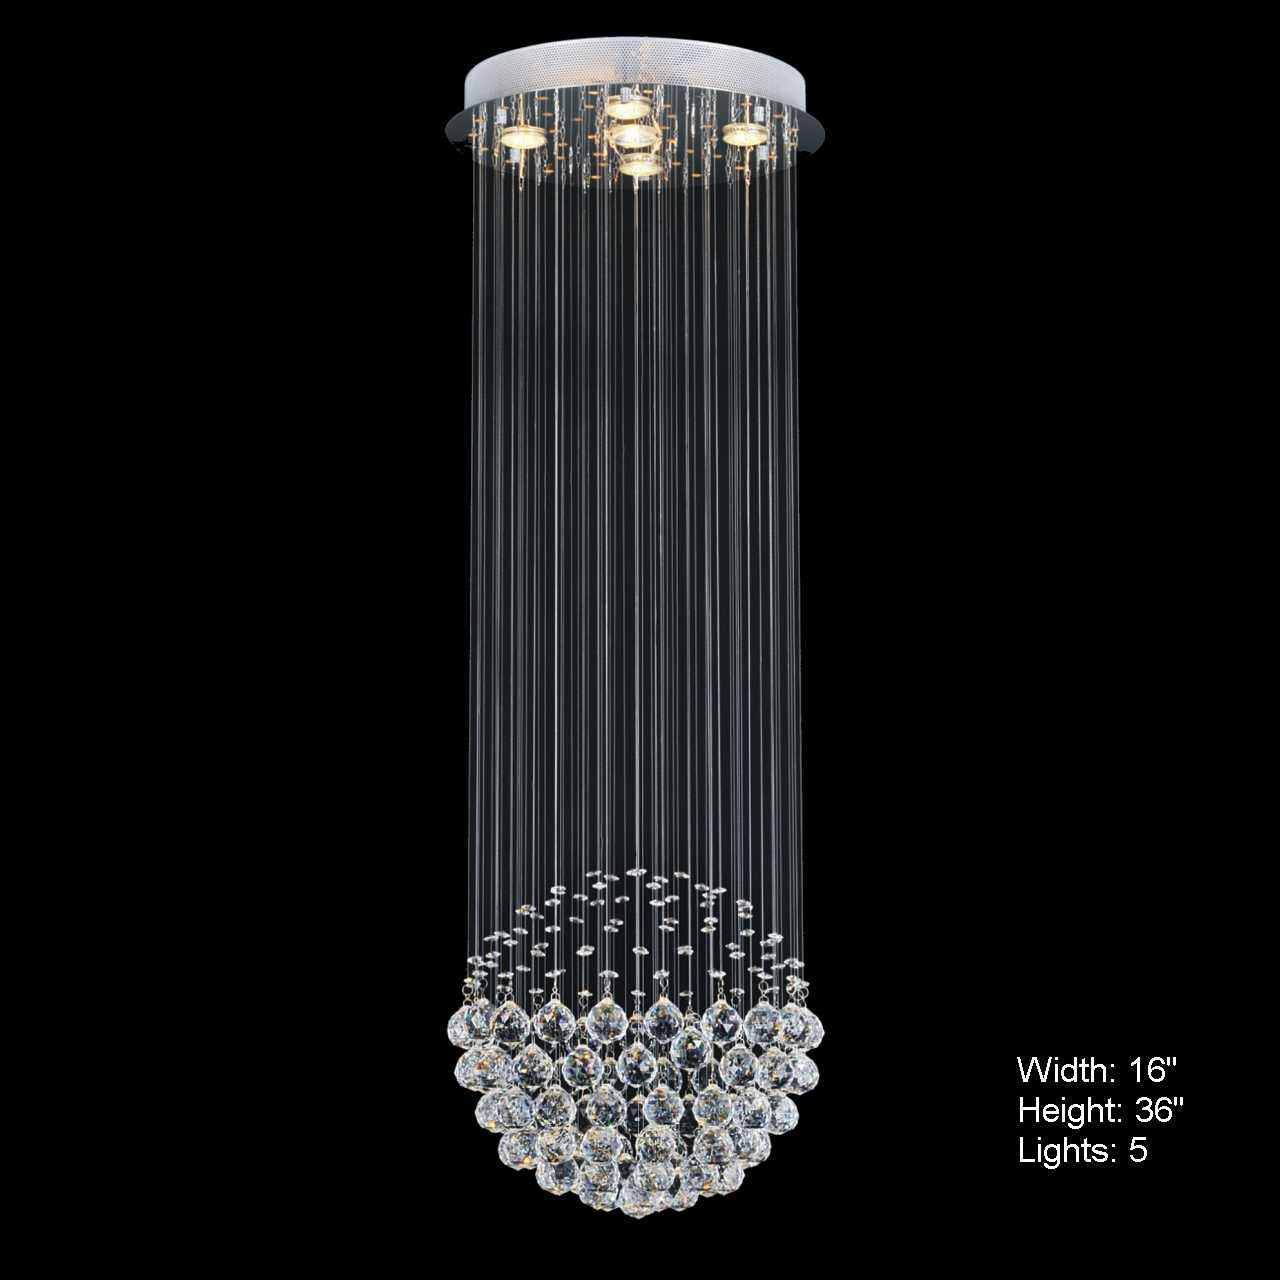 Brizzo lighting stores sphere modern crystal chandelier small mirror stainless steel base 1 light - Images of chandeliers ...